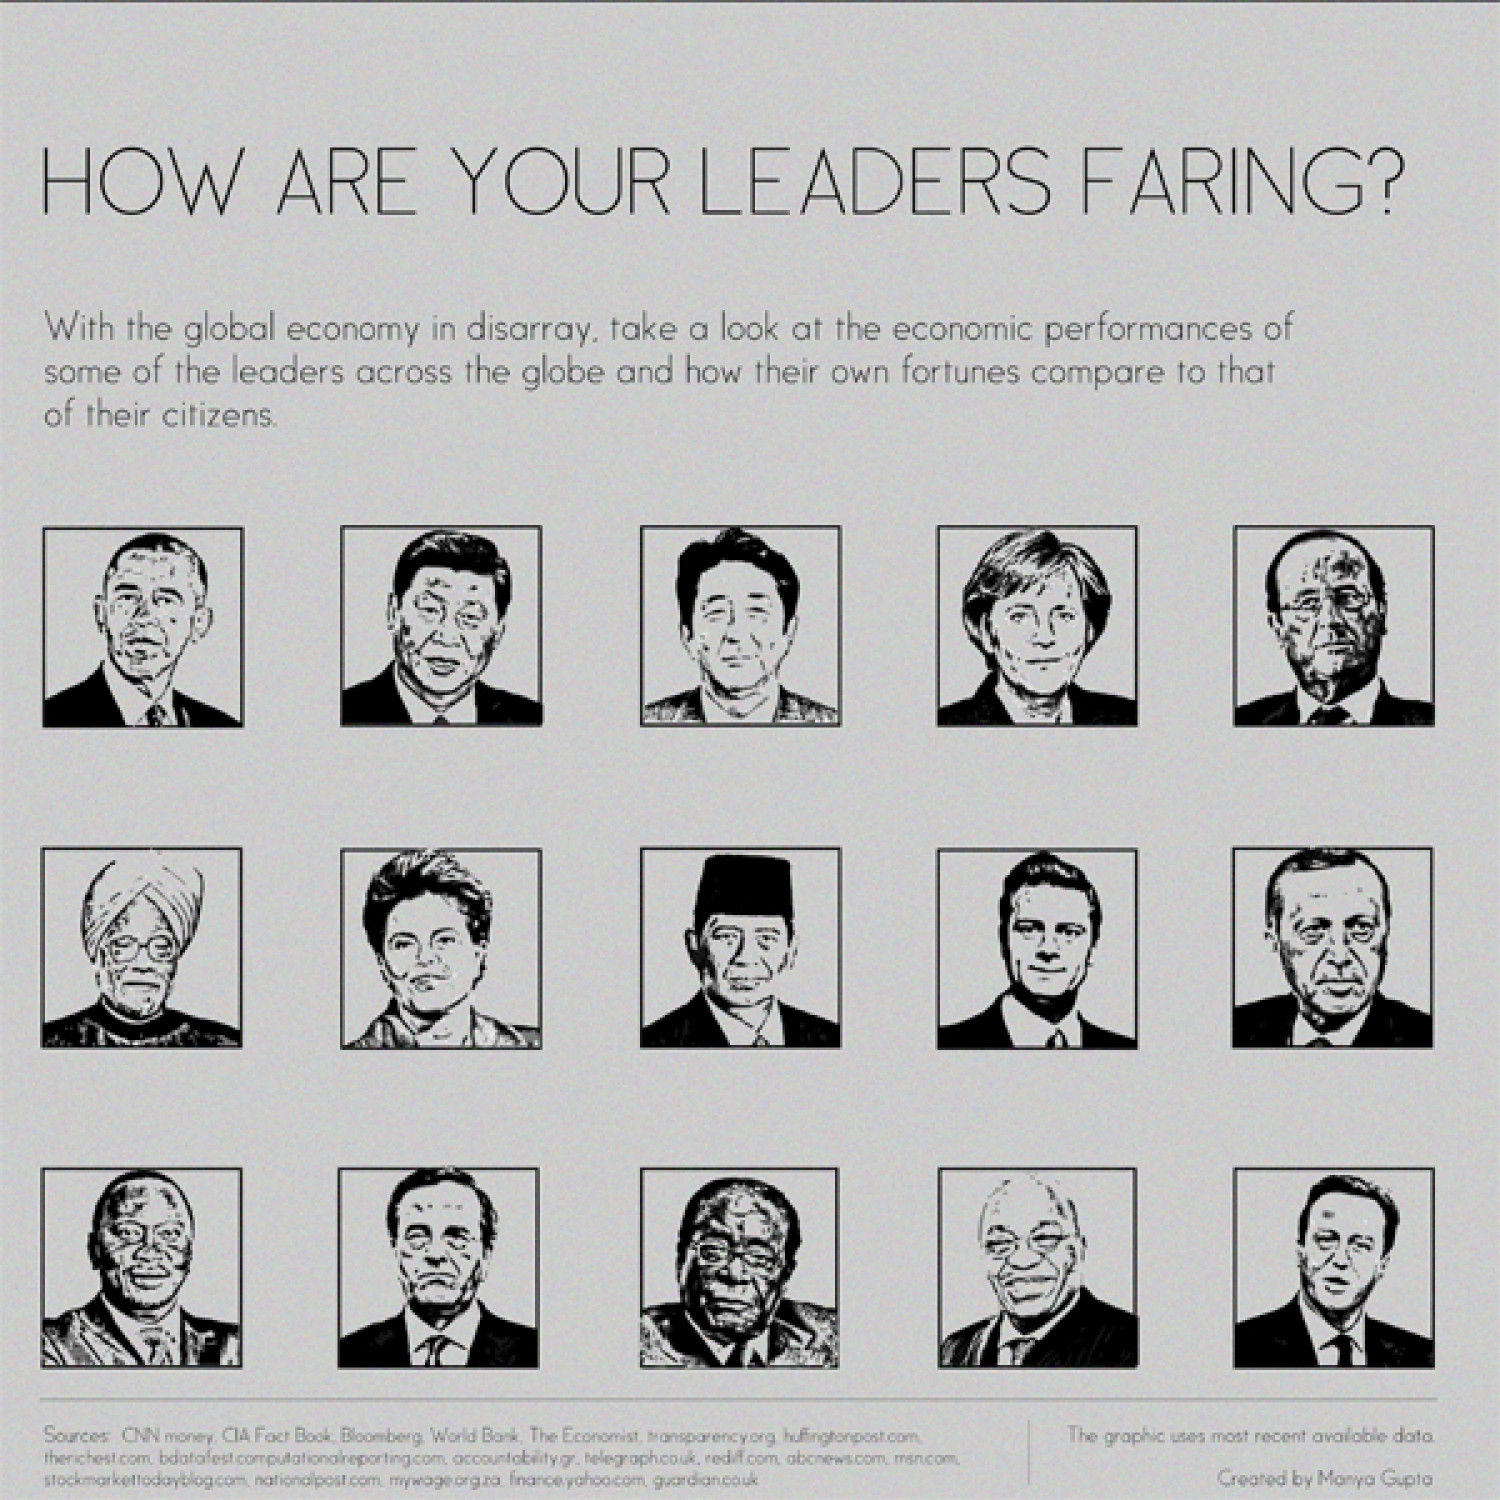 How are Your Leaders Faring? Infographic